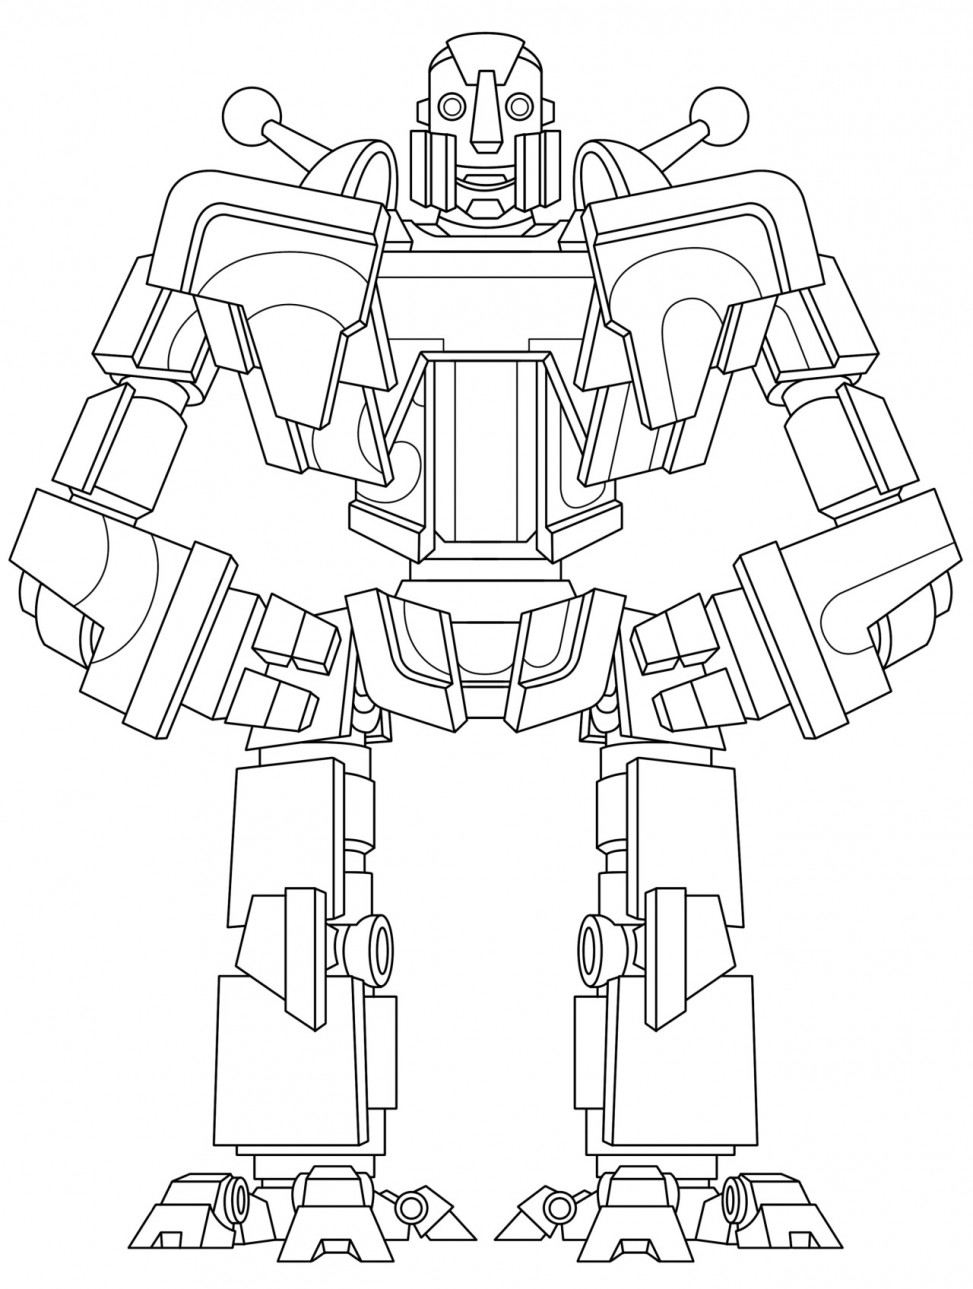 robot colouring pictures robots coloring pages download and print robots coloring pictures robot colouring